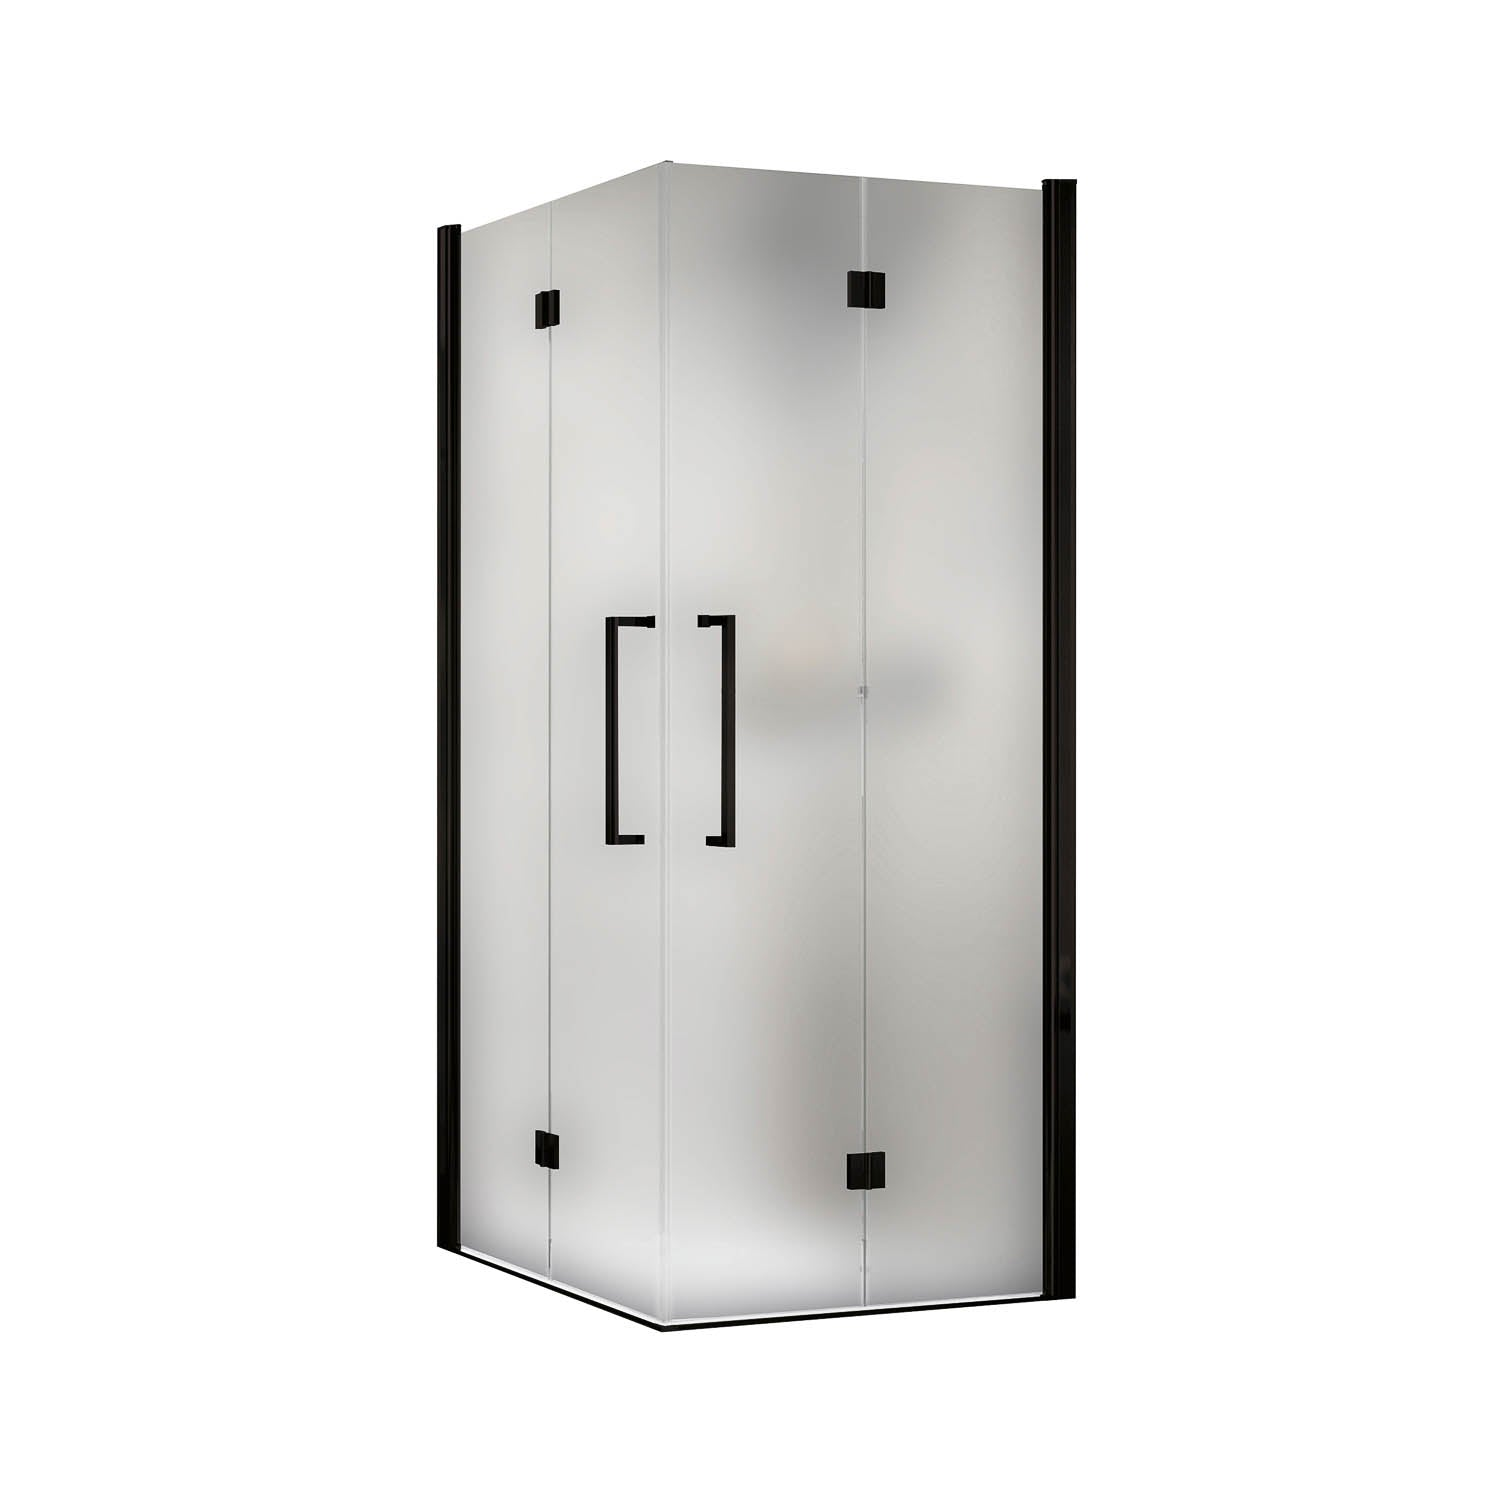 1190-1210mm Bliss Bi-folding Screen Frosted Glass with a matt black finish on a white background